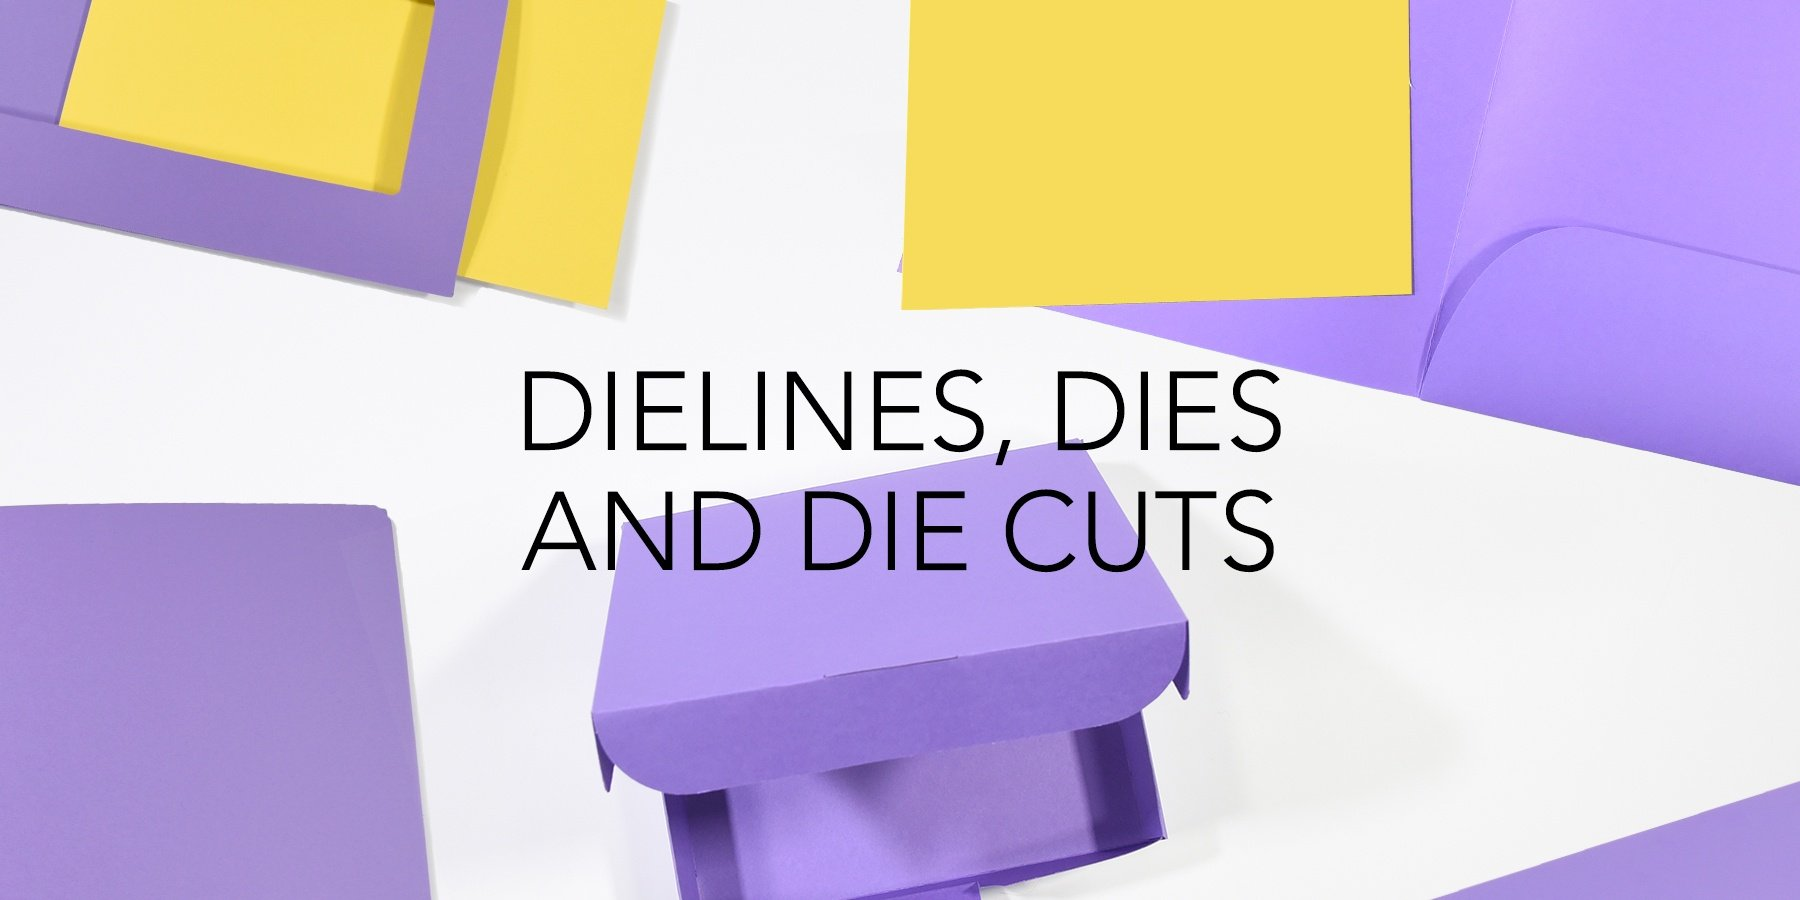 Dielines, Dies, and Die Cuts: What Graphic Designers Need to Know